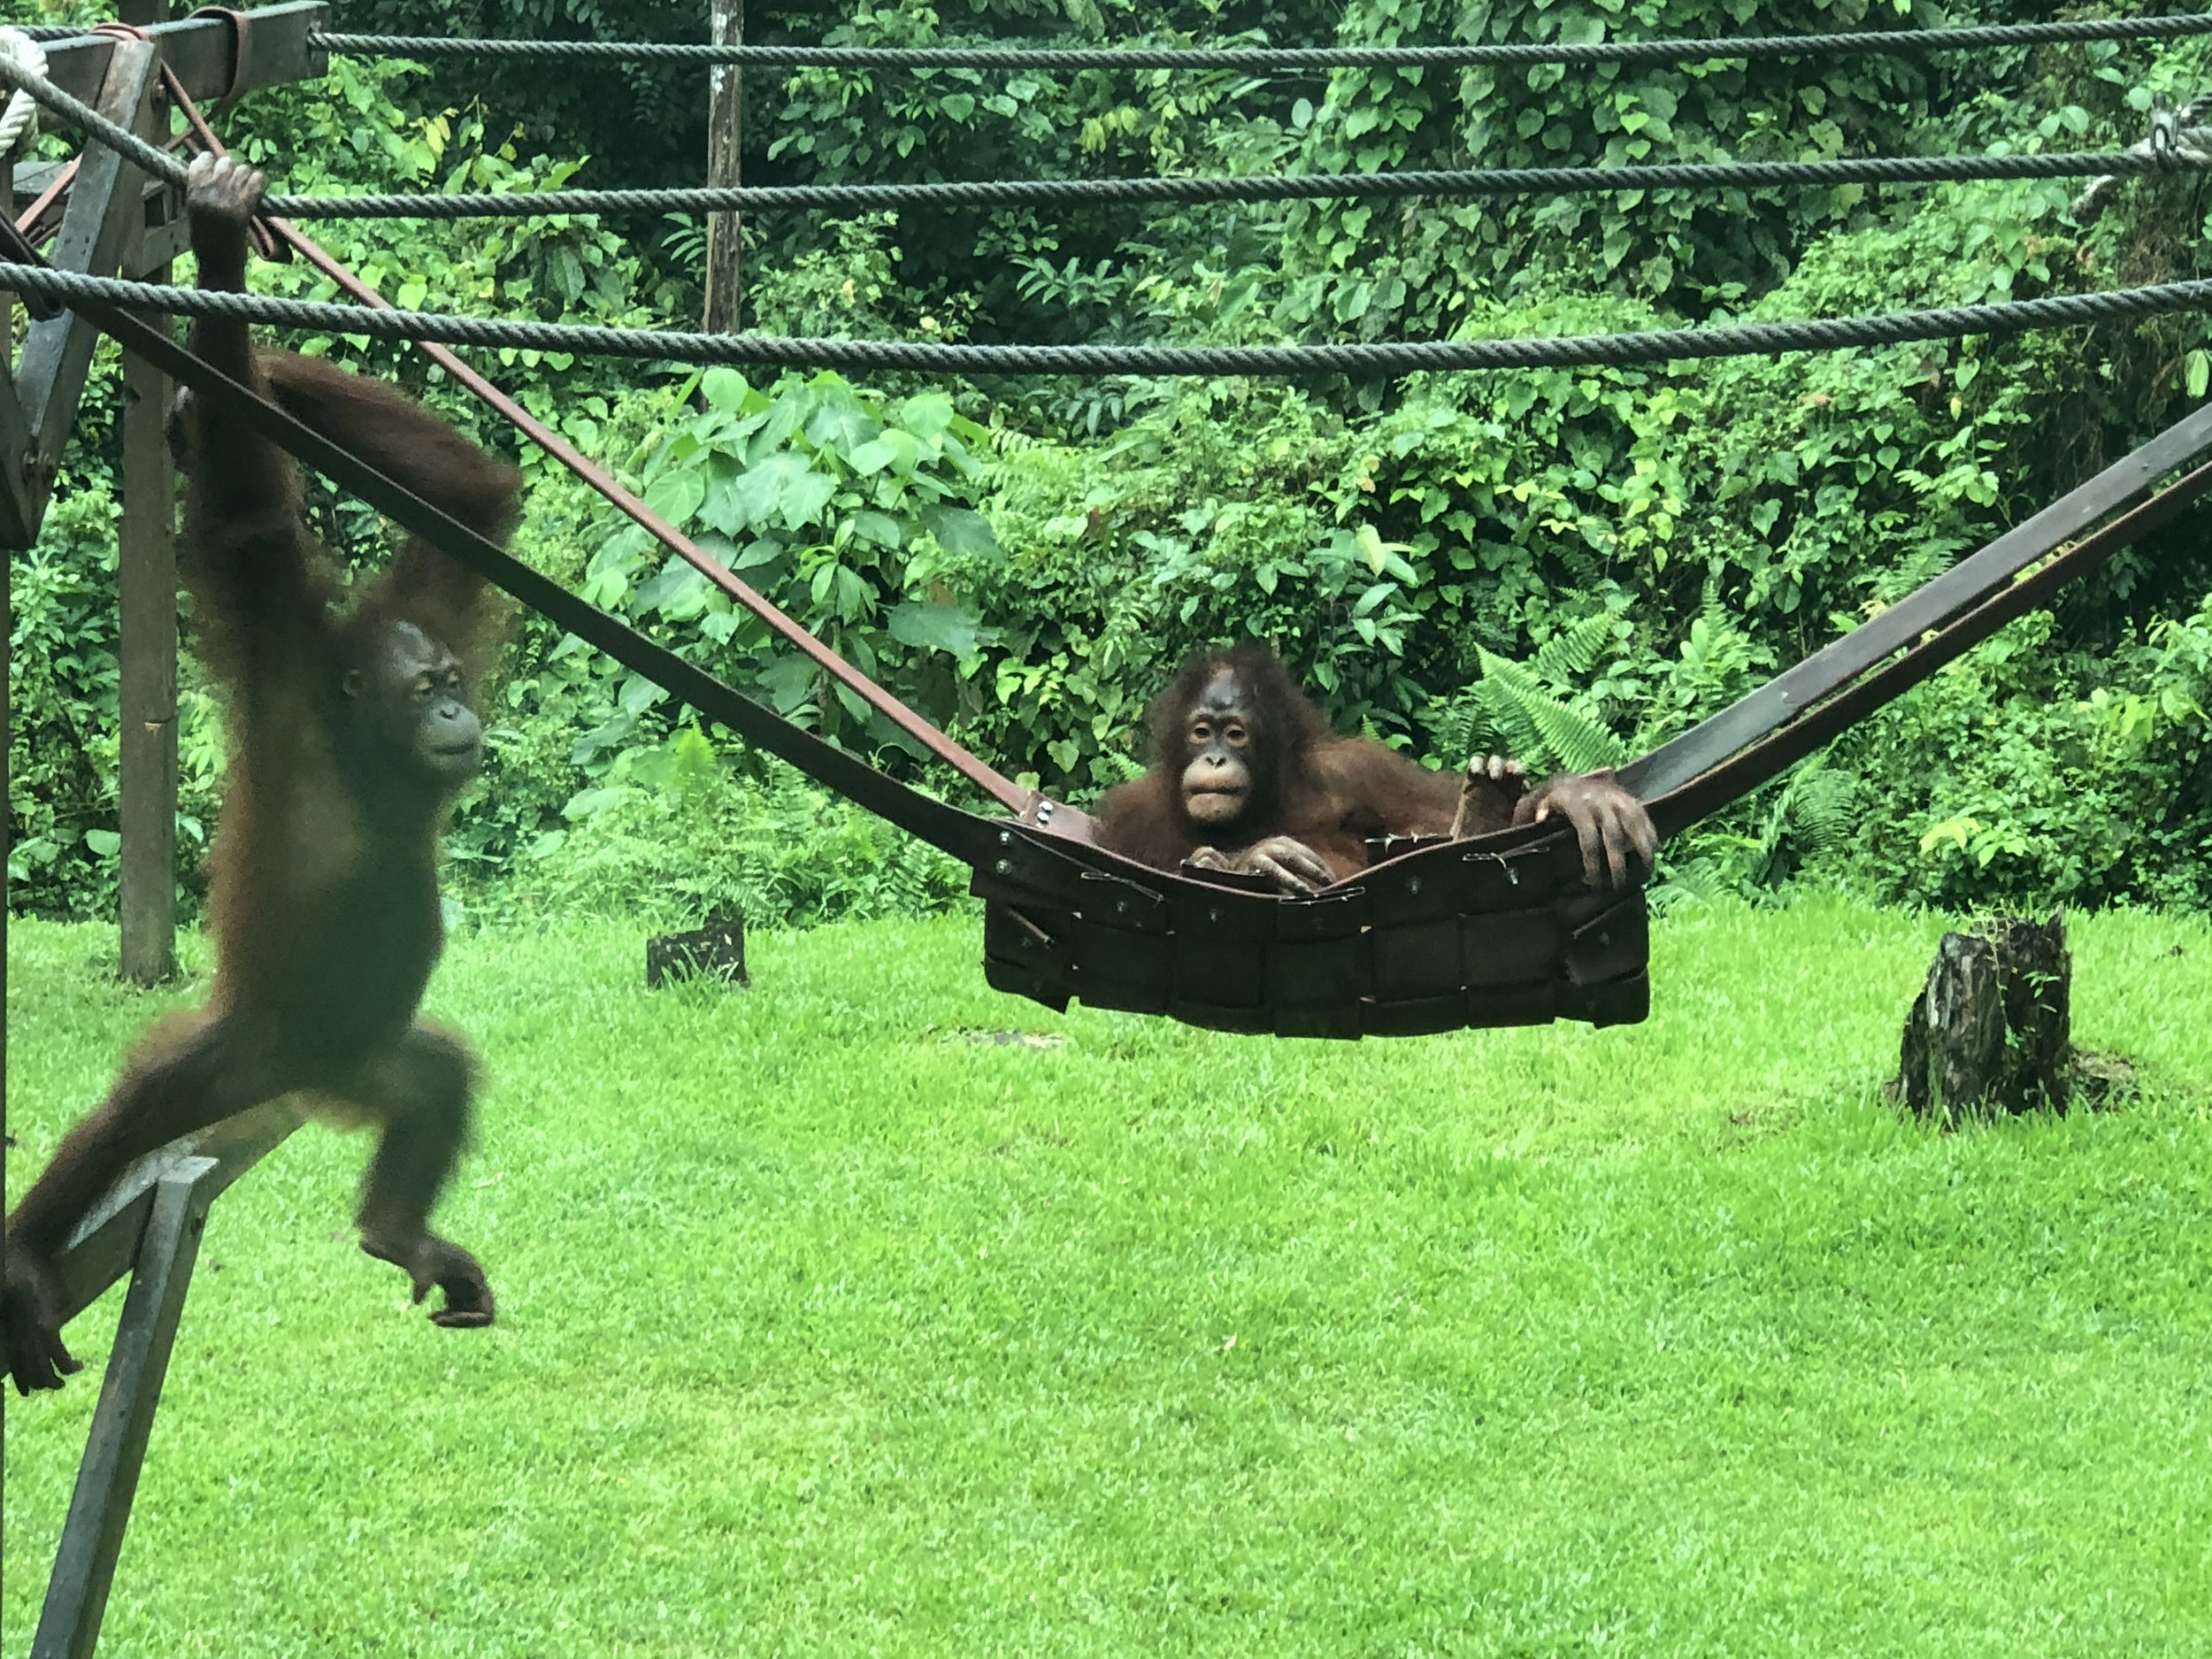 Play with a purpose at Sepilok nursery where orphan orangutans learn 'life-skills' such as climbing